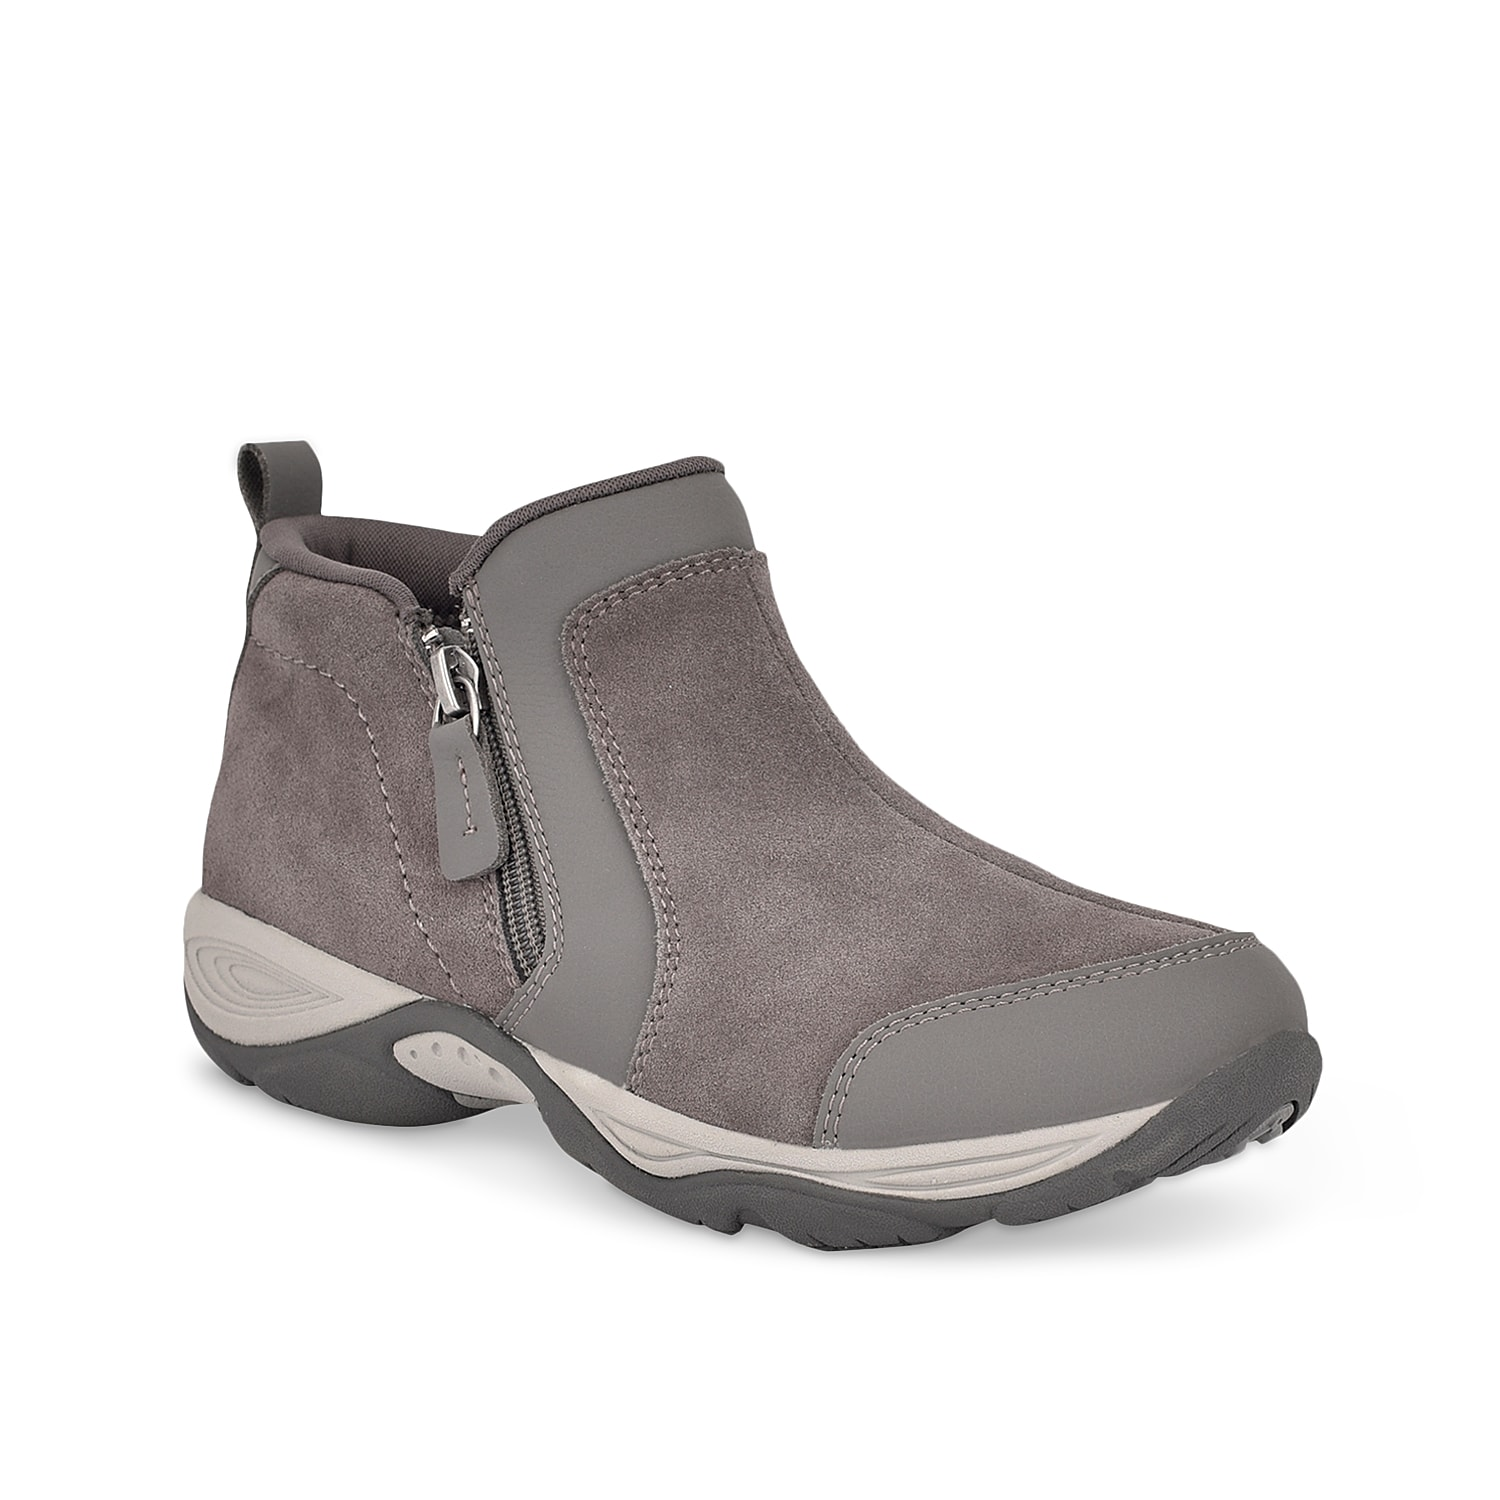 Shelter your feet in the Evony bootie by Easy Spirit for fun, flexible outdoor adventures. This bootie is built with side gore gusset, lightweight Elon midsole and ubber bottom to provide traction even on grippy surfaces.